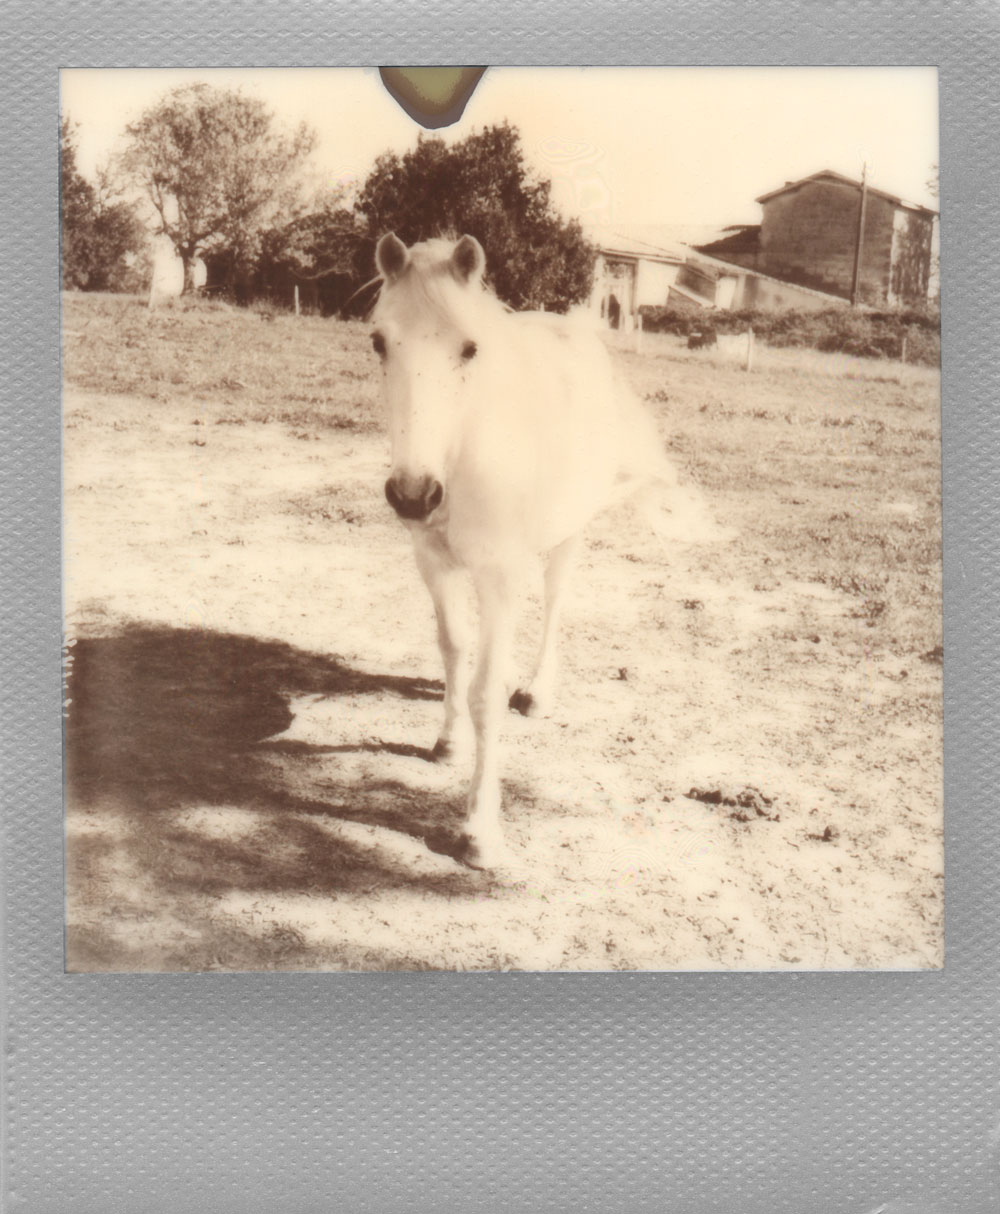 012.-The-tiny-white-horse-and-the-far-far-trees-WOO-HOO---Polaroid-SLR680